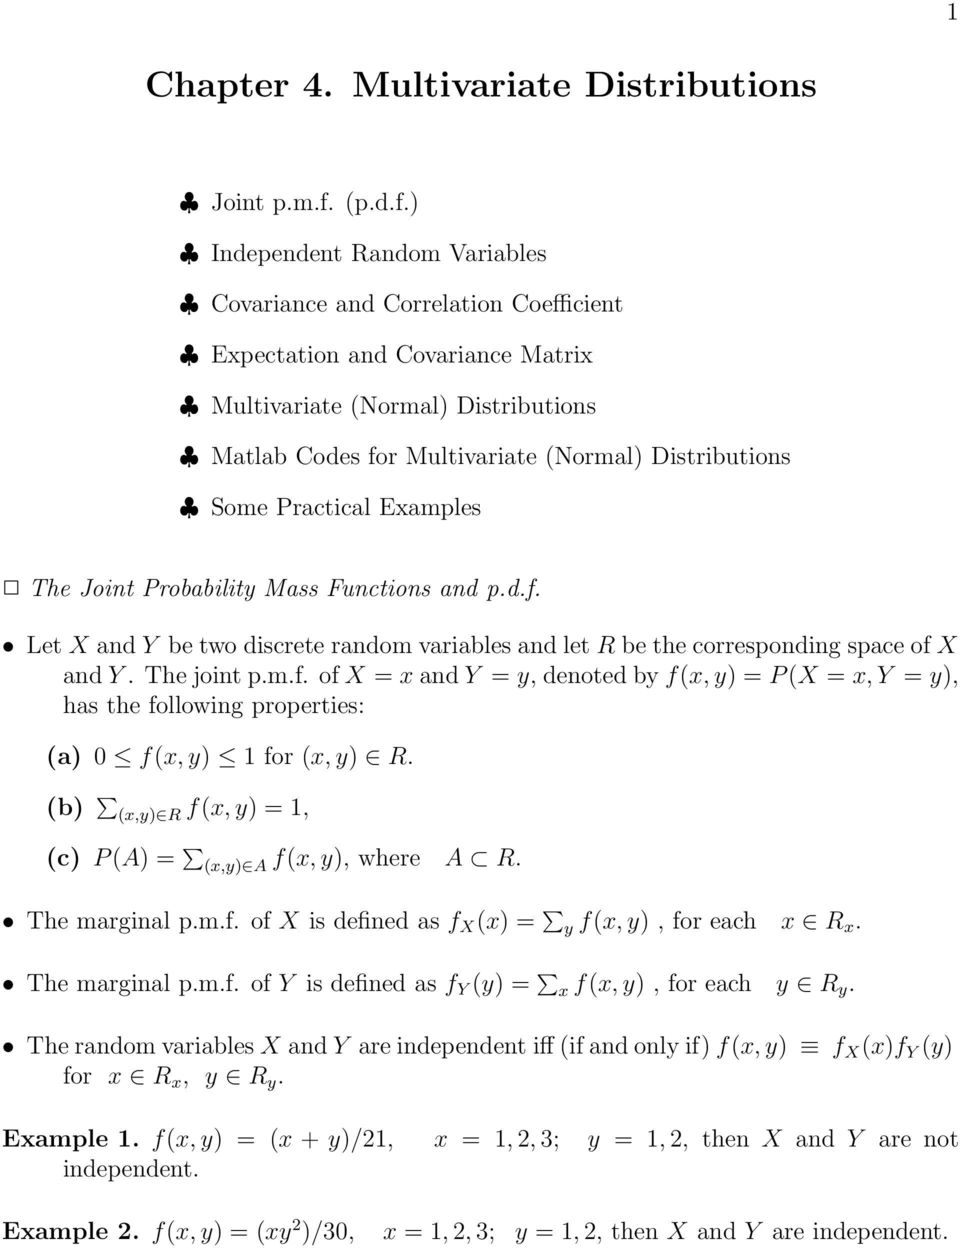 ) Independent Random Variables Covariance and Correlation Coefficient Expectation and Covariance Matrix Multivariate (Normal) Distributions Matlab Codes for Multivariate (Normal) Distributions Some